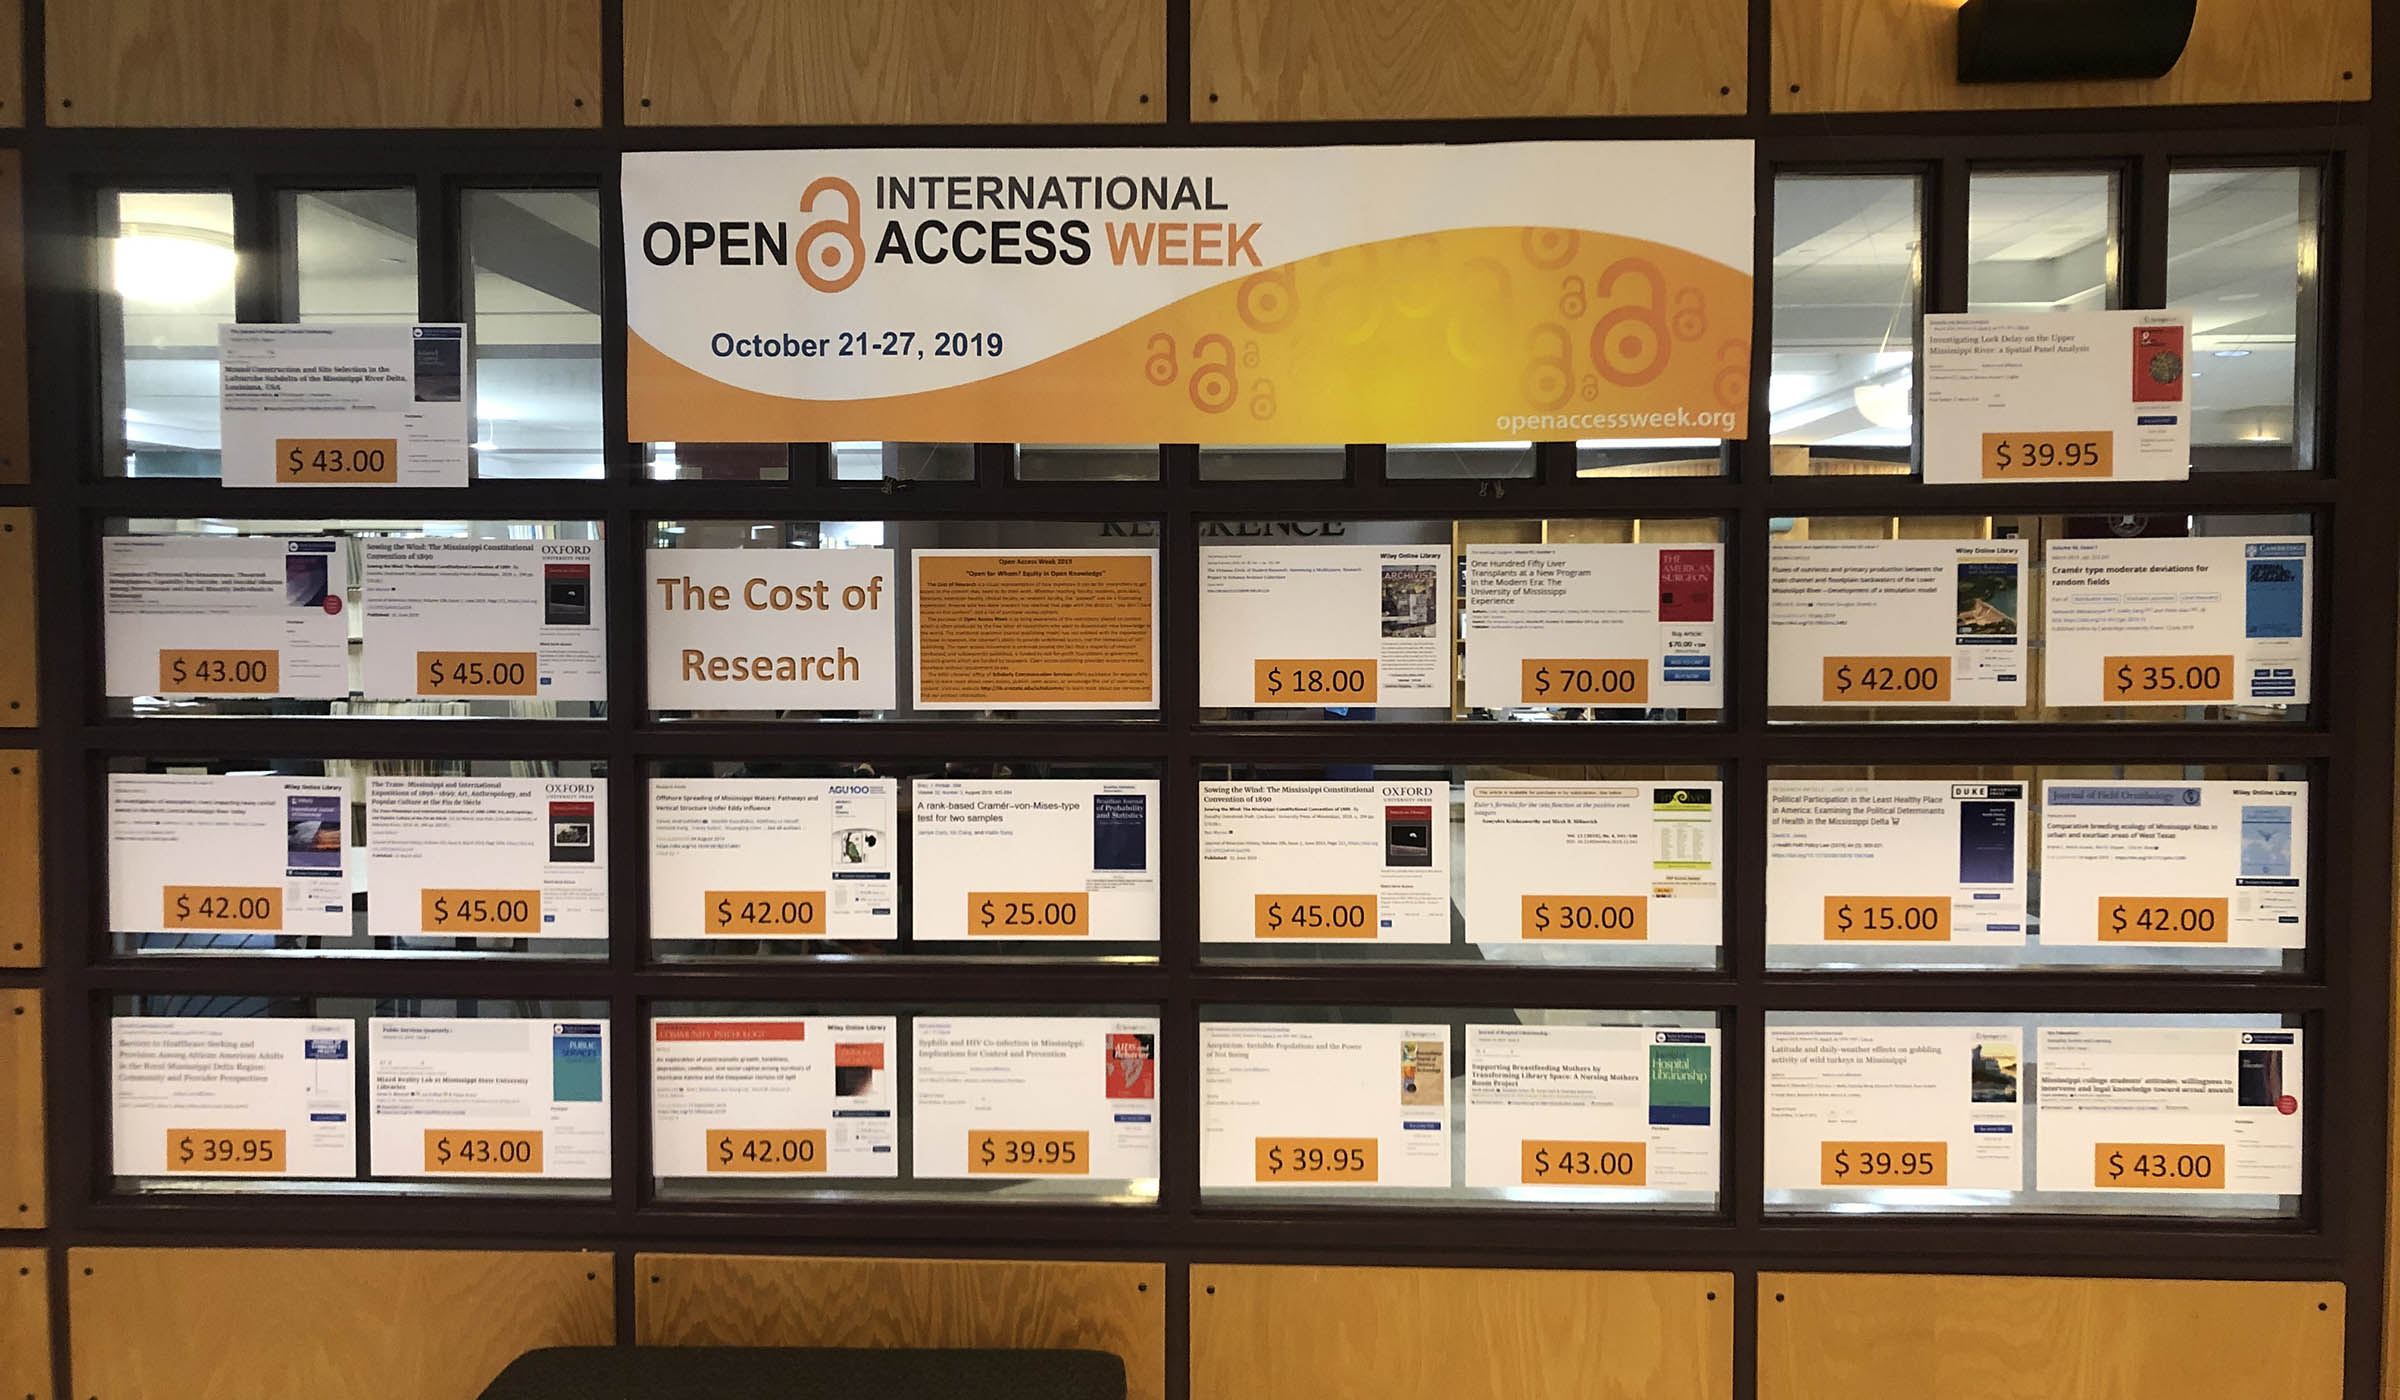 Open Access Week display